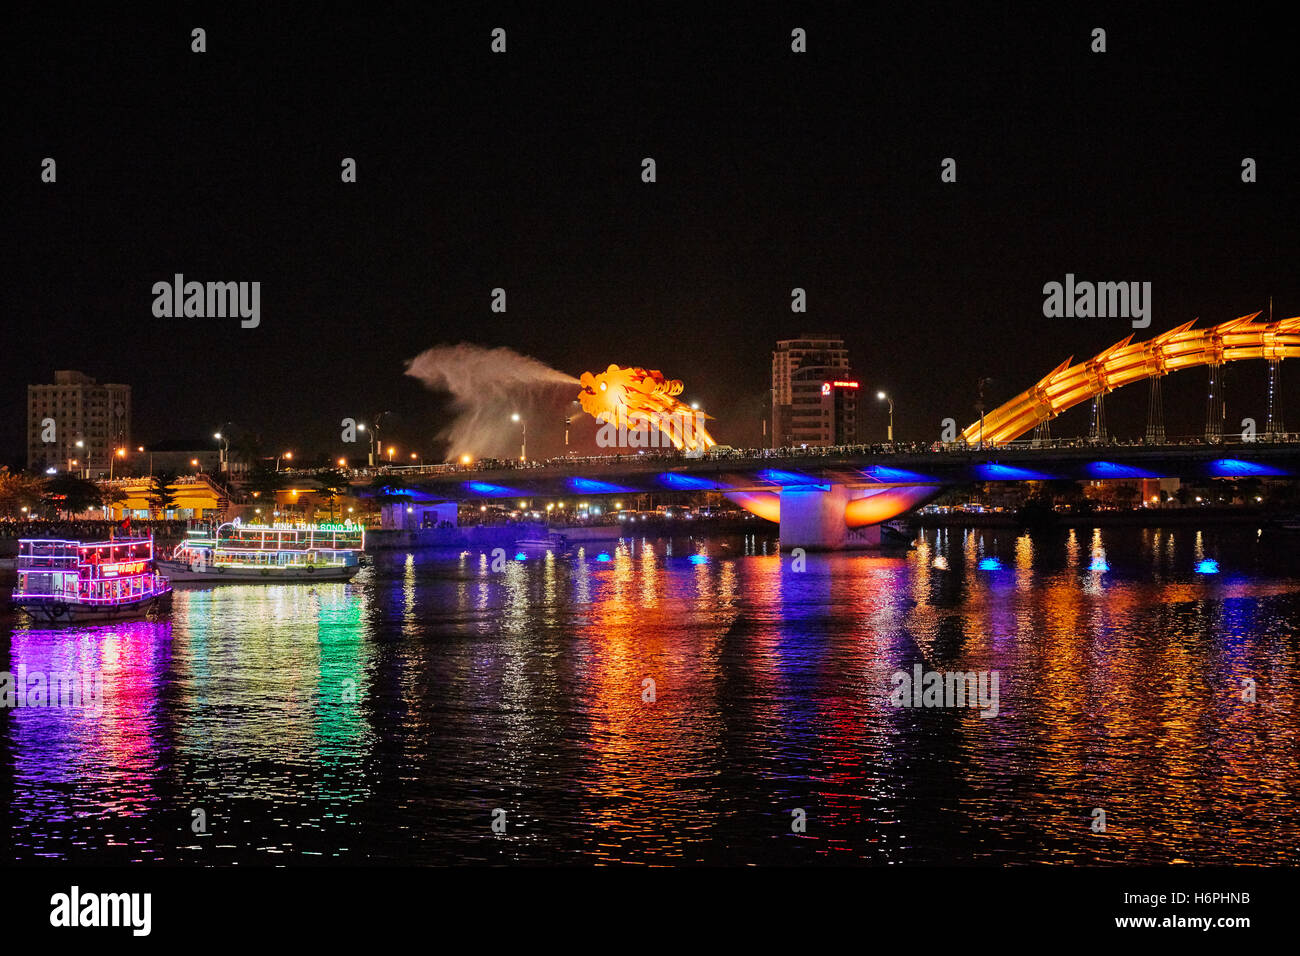 Dragon Bridge (Cau Rong) breathing steam. Da Nang city, Vietnam. - Stock Image